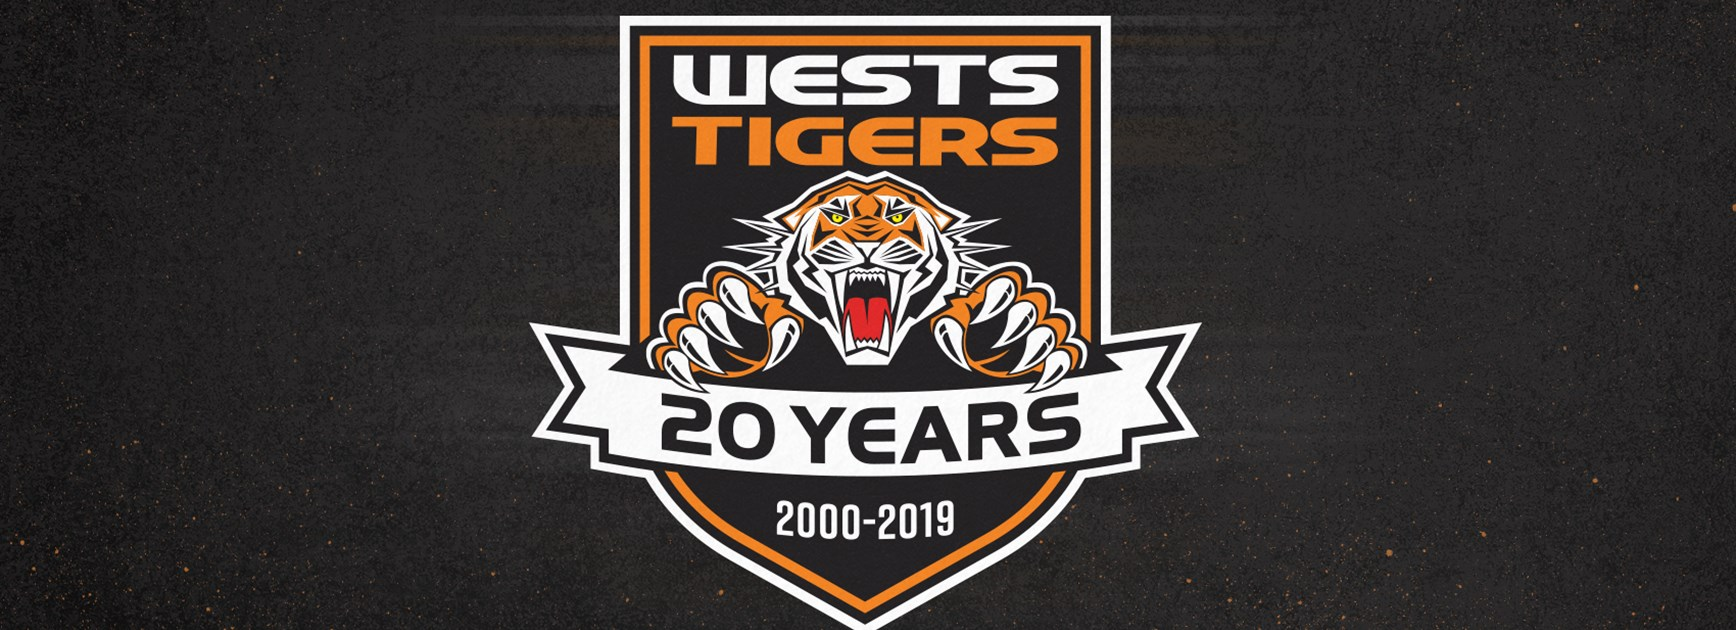 Wests Tigers announce Barry O'Farrell as Chair